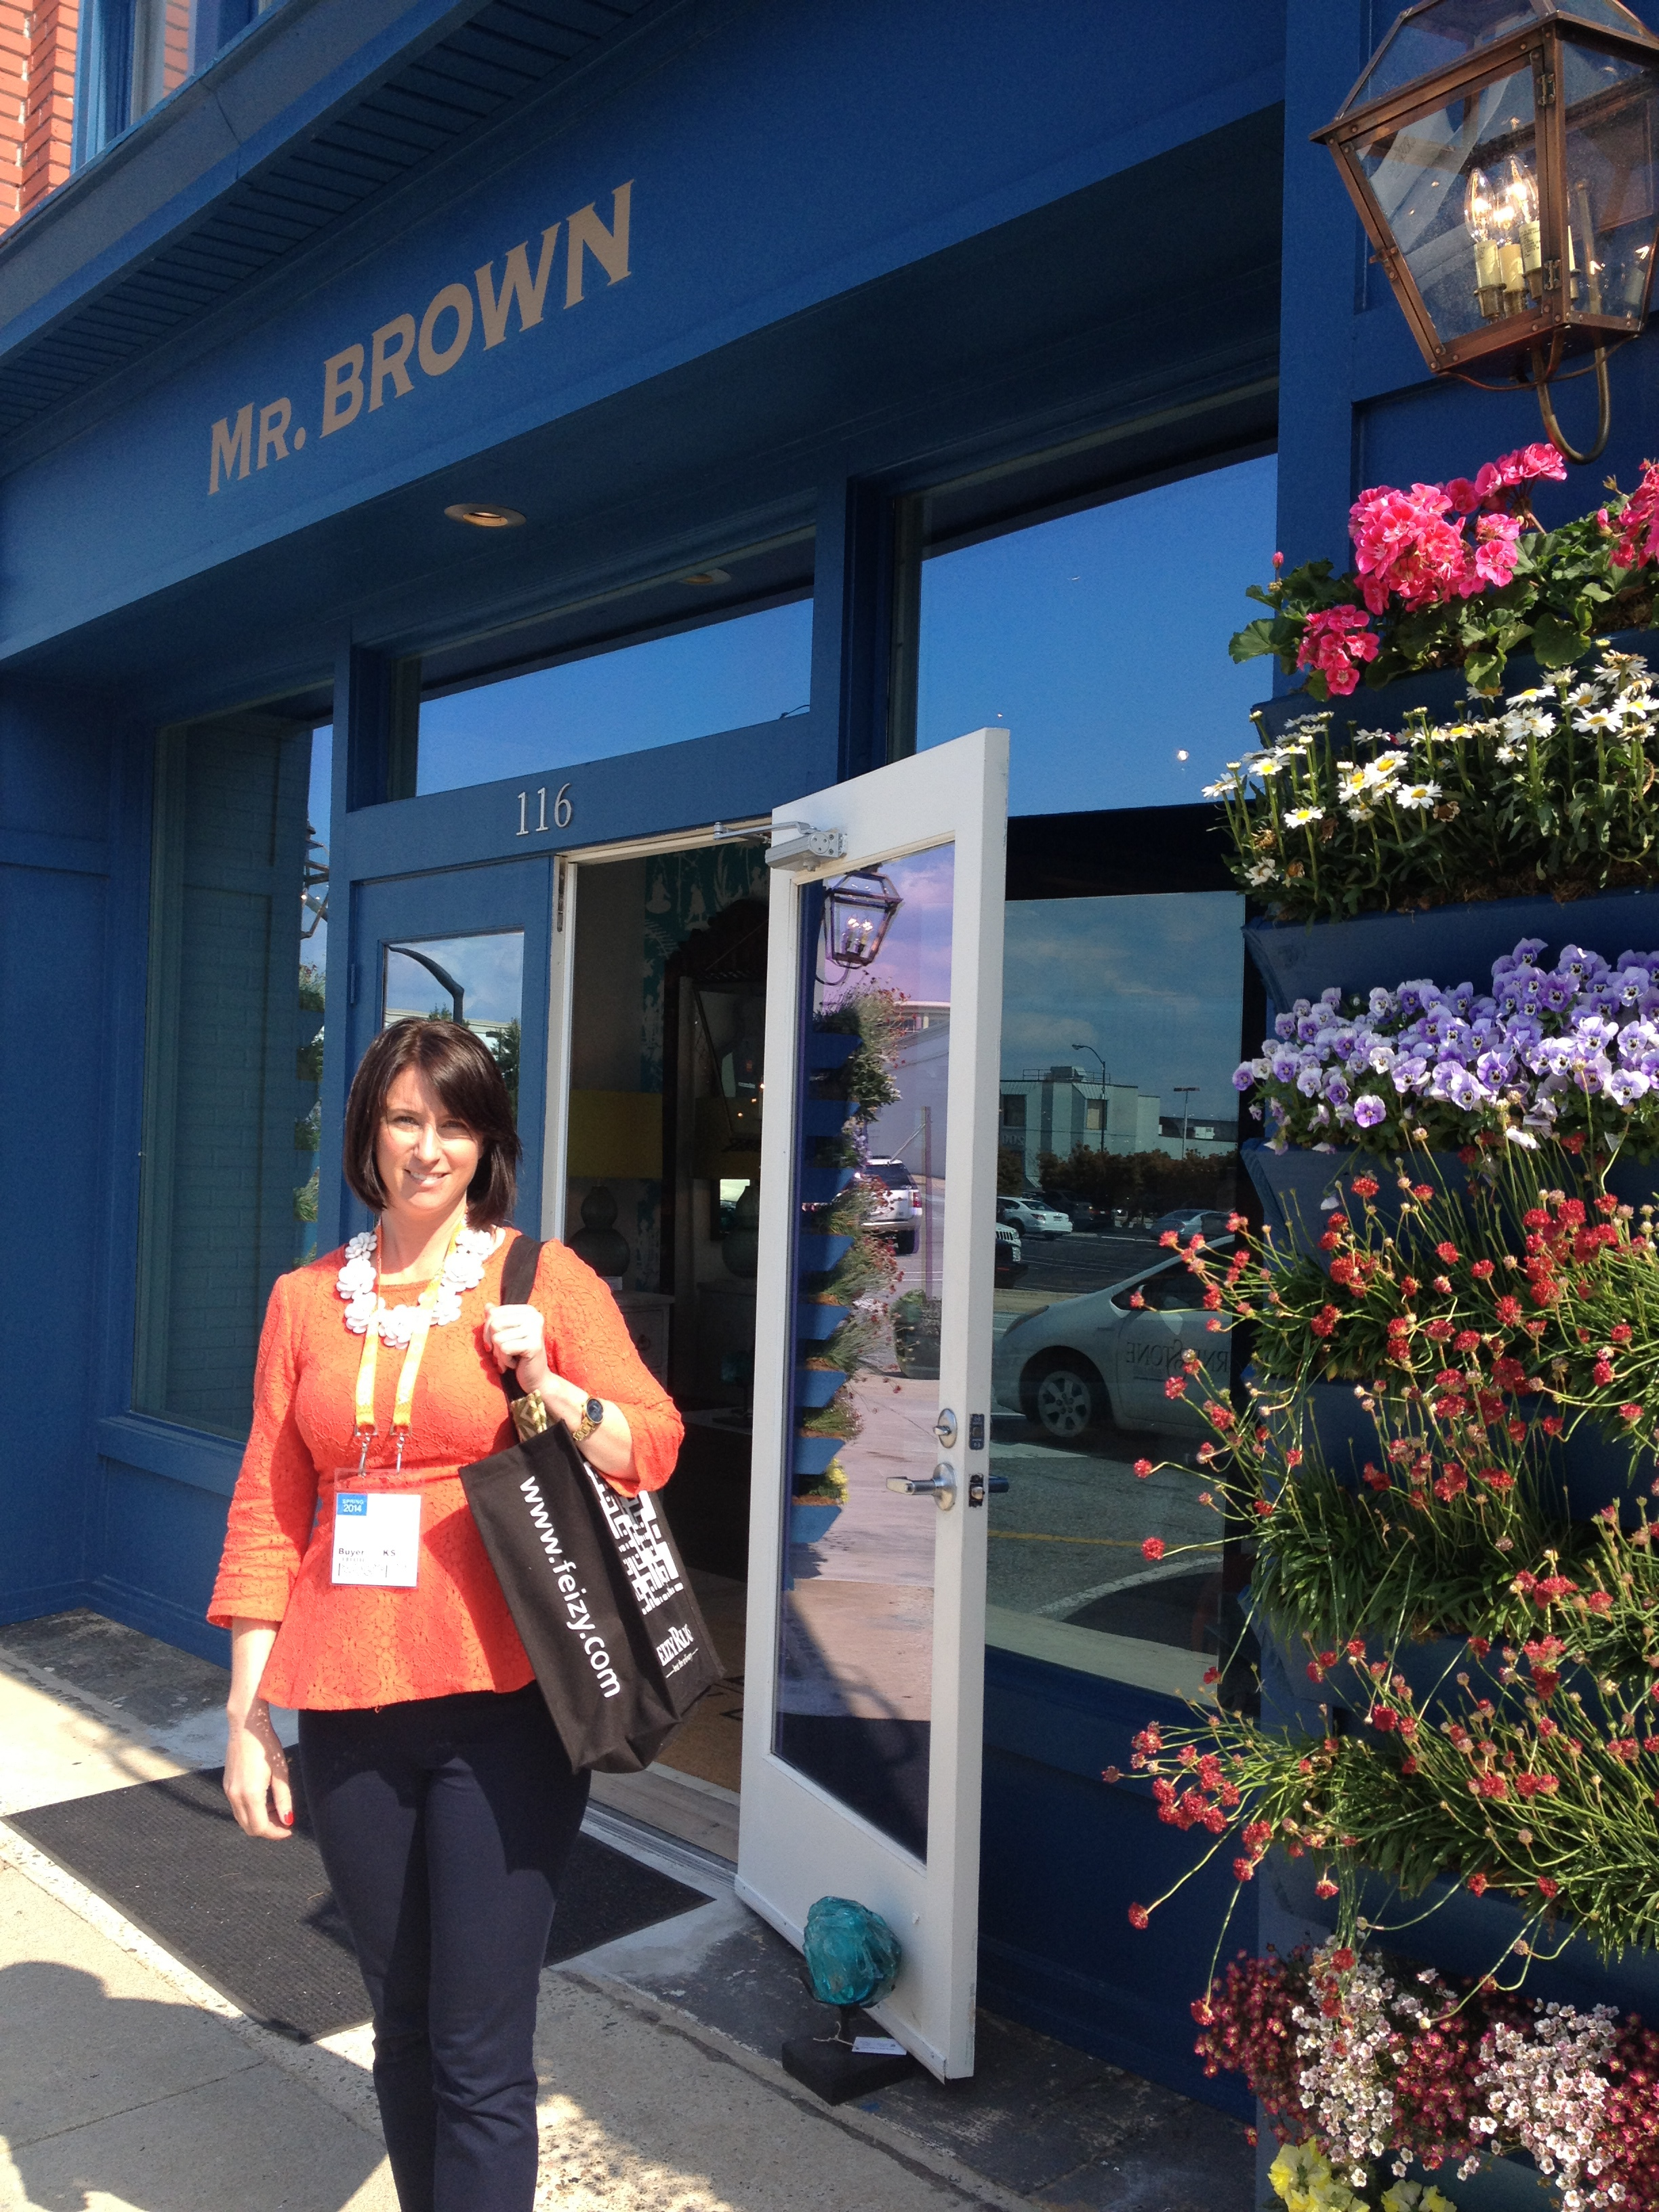 One of the last stops was the new showroom of Mr. Brown.